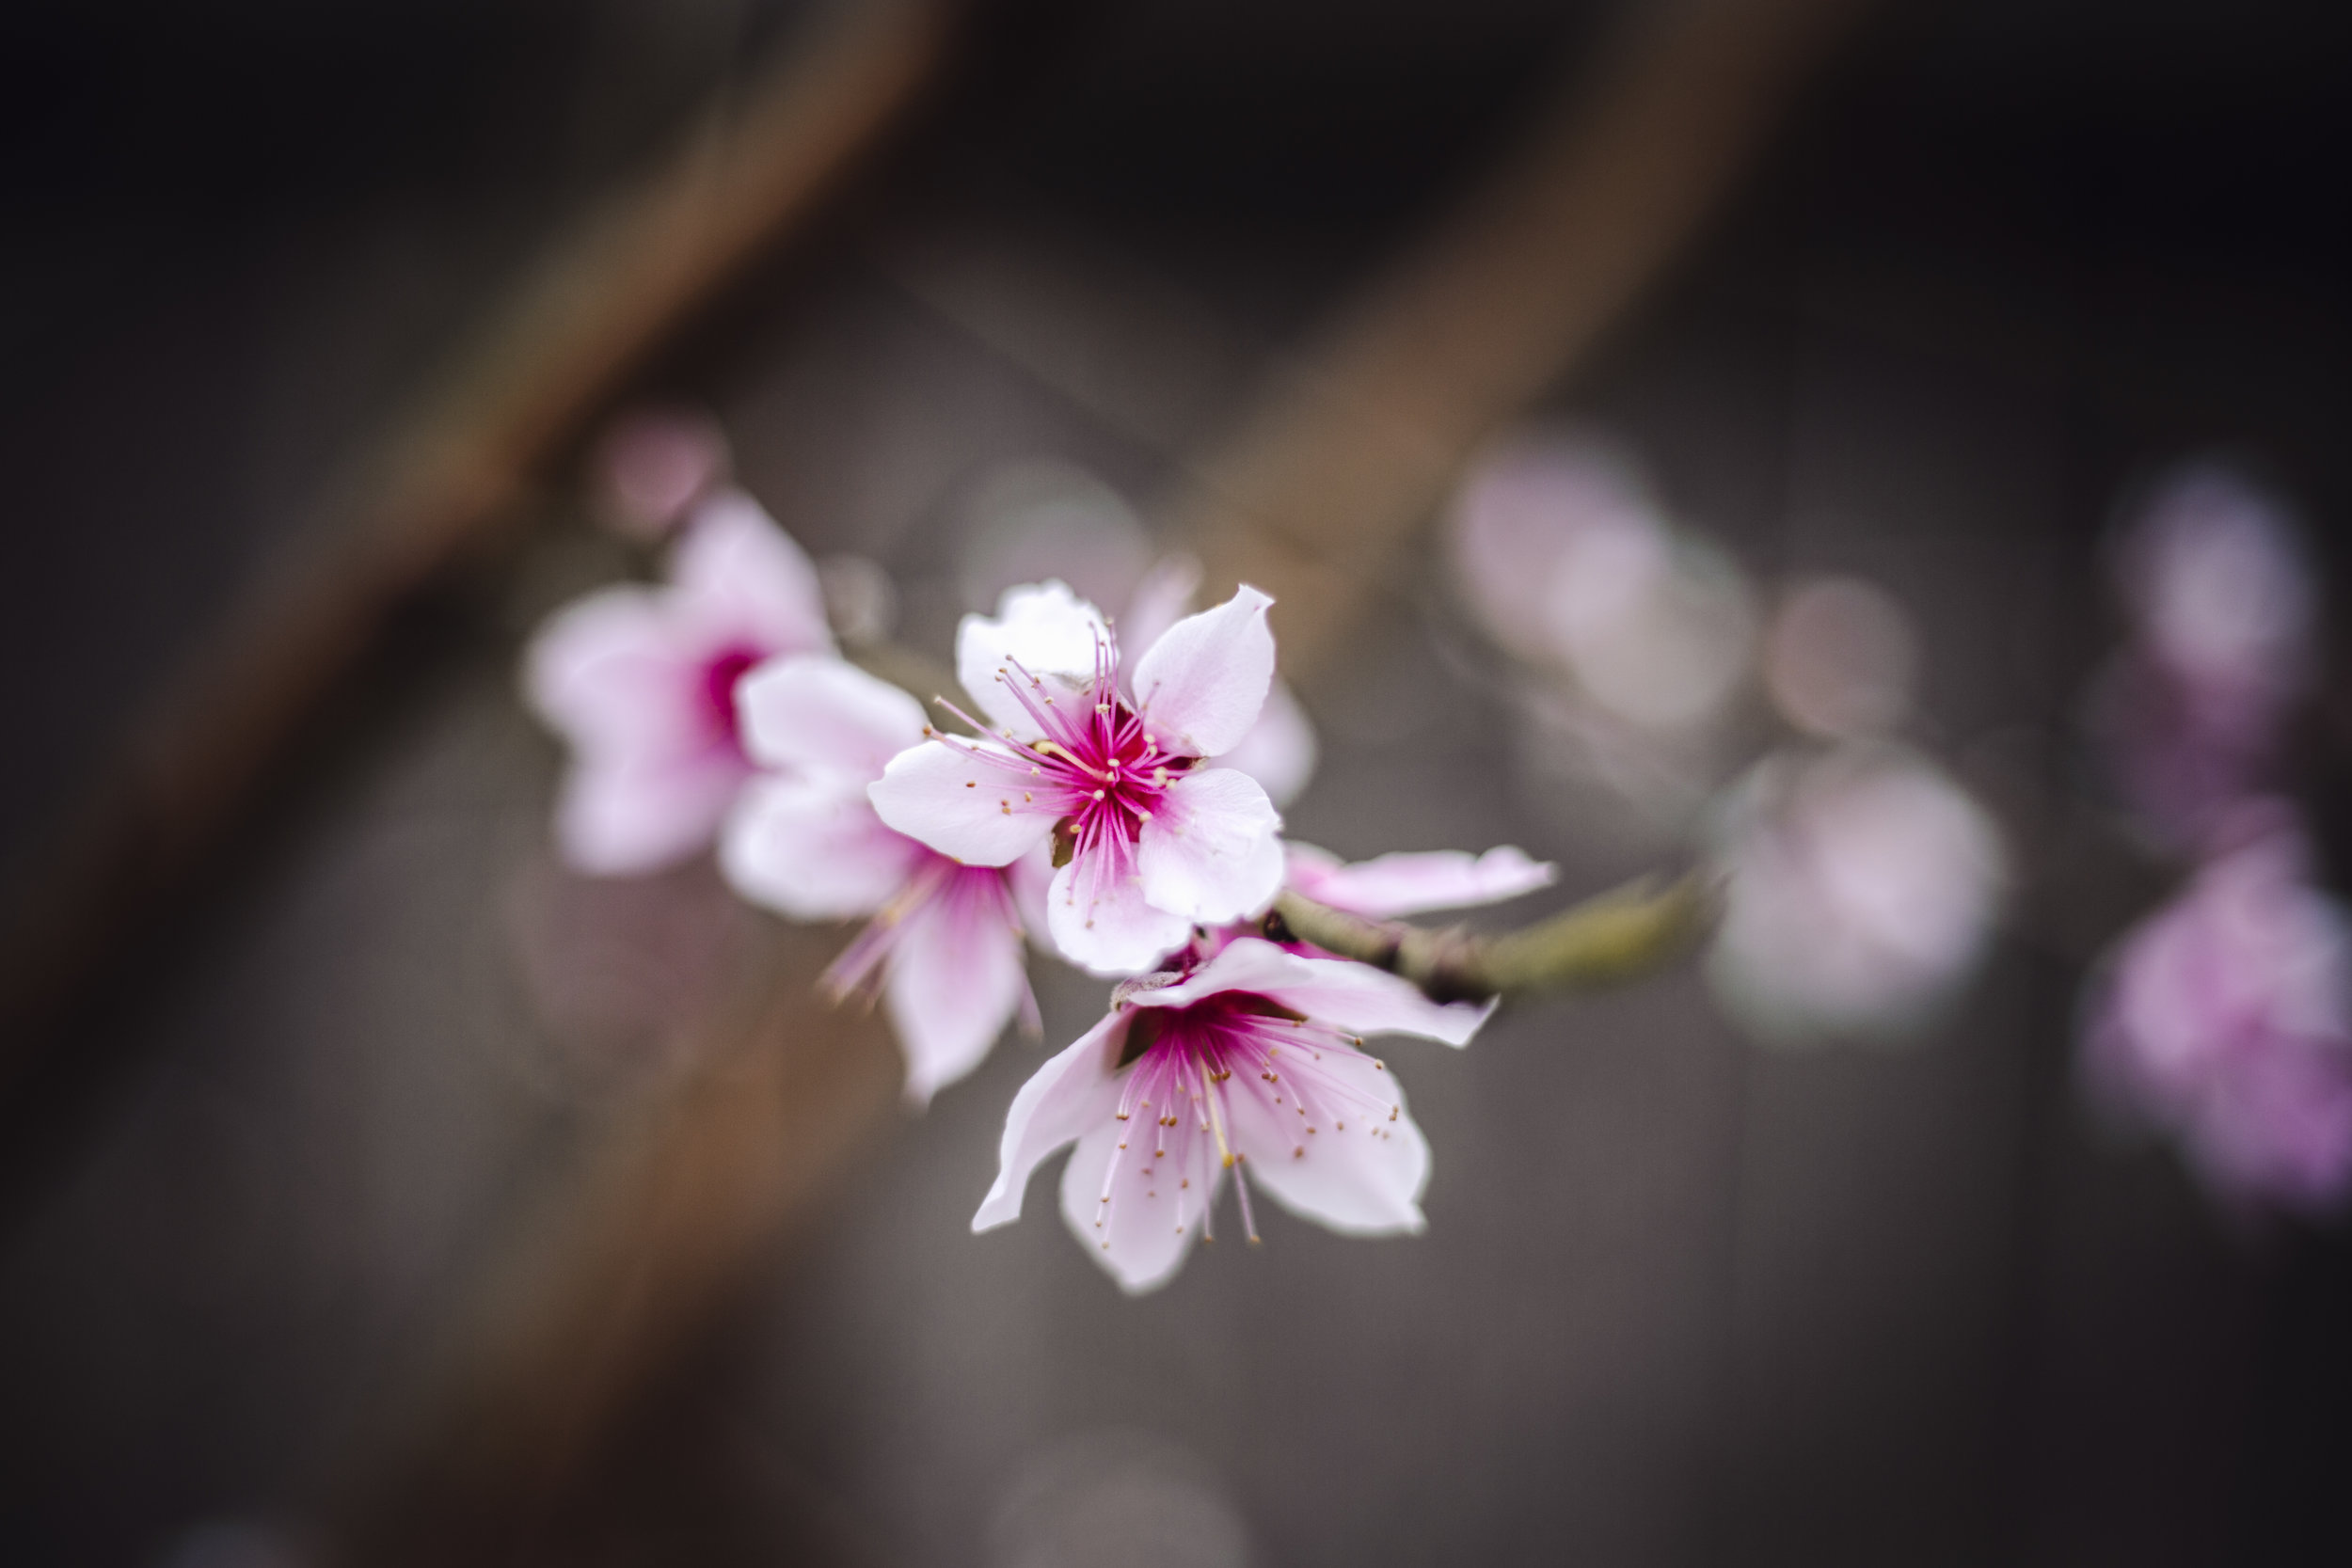 Peach Blossoms are Blooming! -